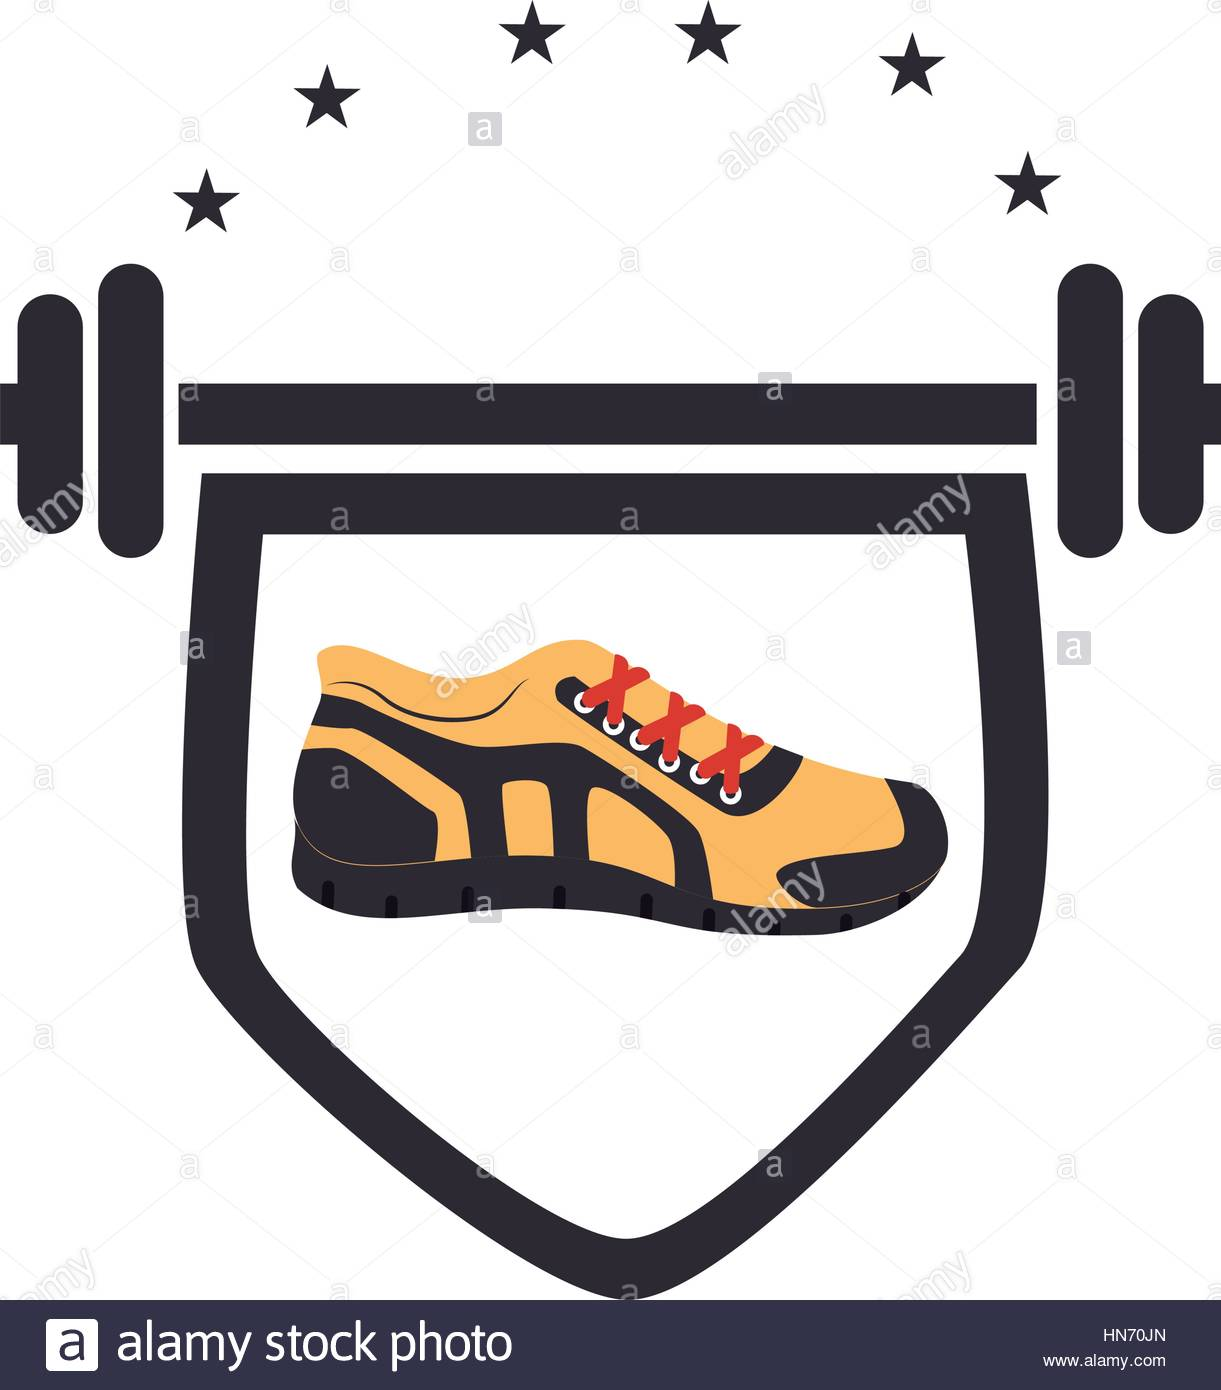 1221x1390 Color Silhouette With Shield With Weighlifting Bar Shoe